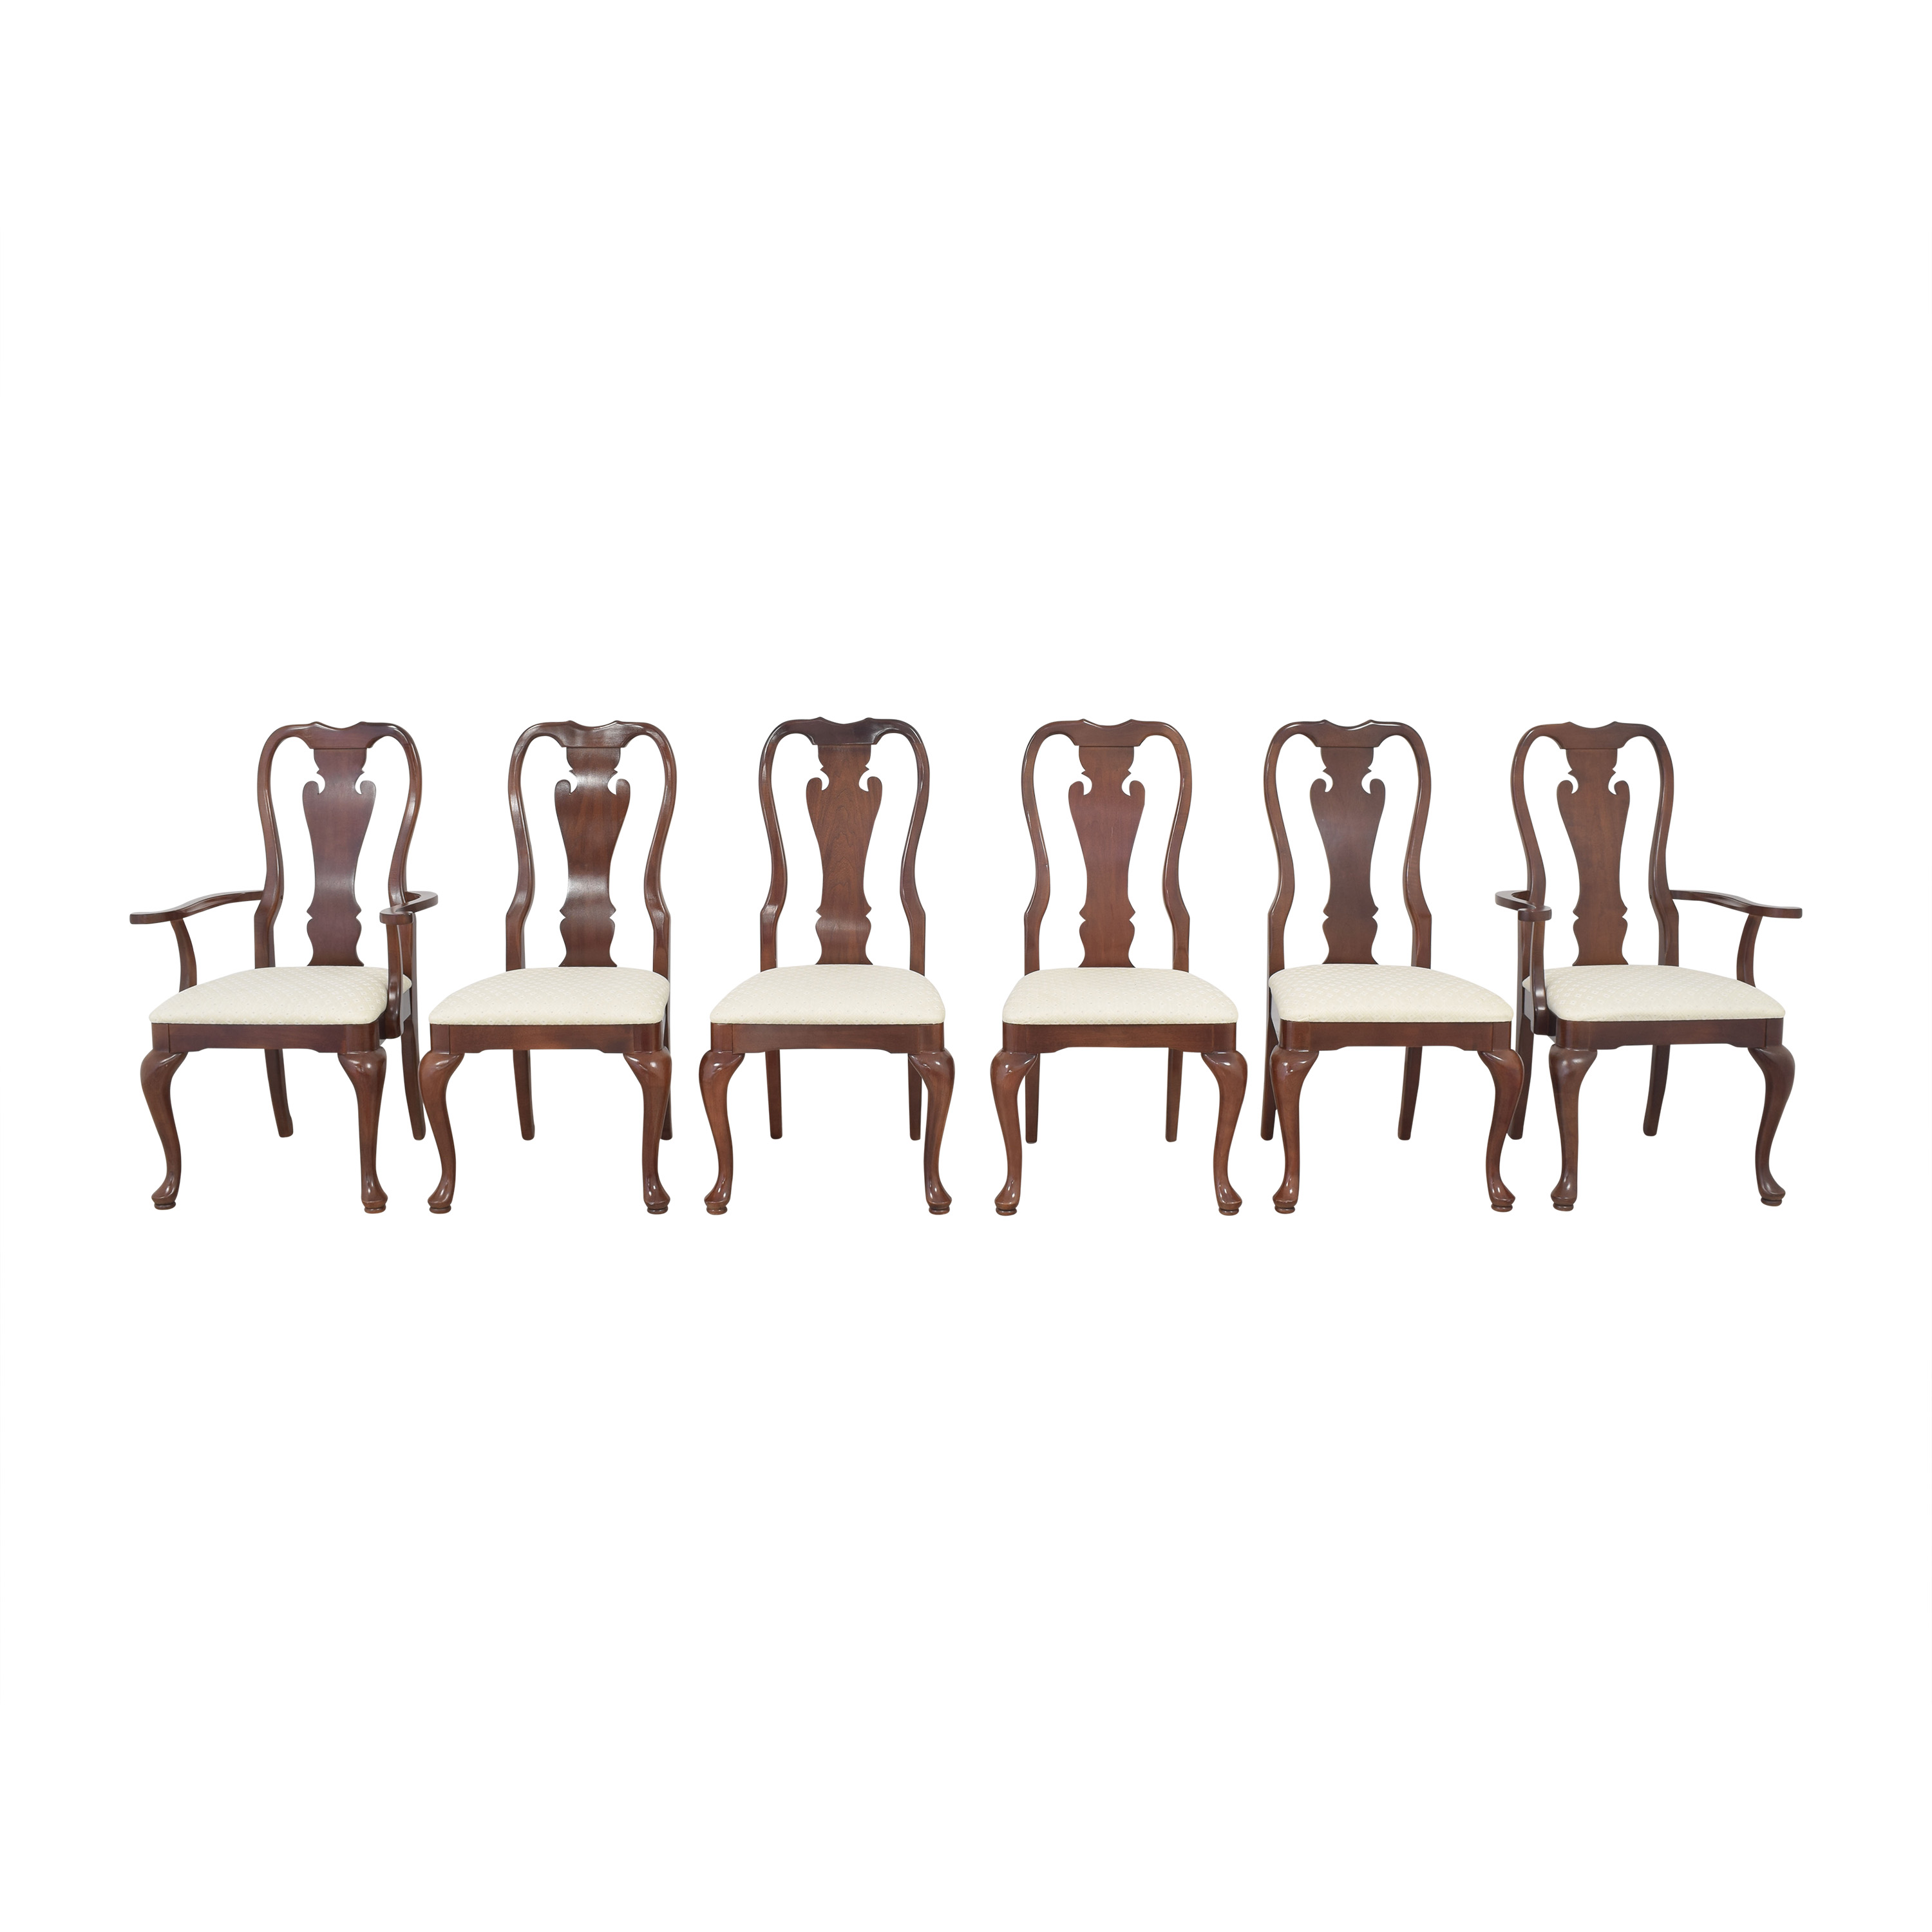 Thomasville Thomasville Queen Anne Dining Chairs used